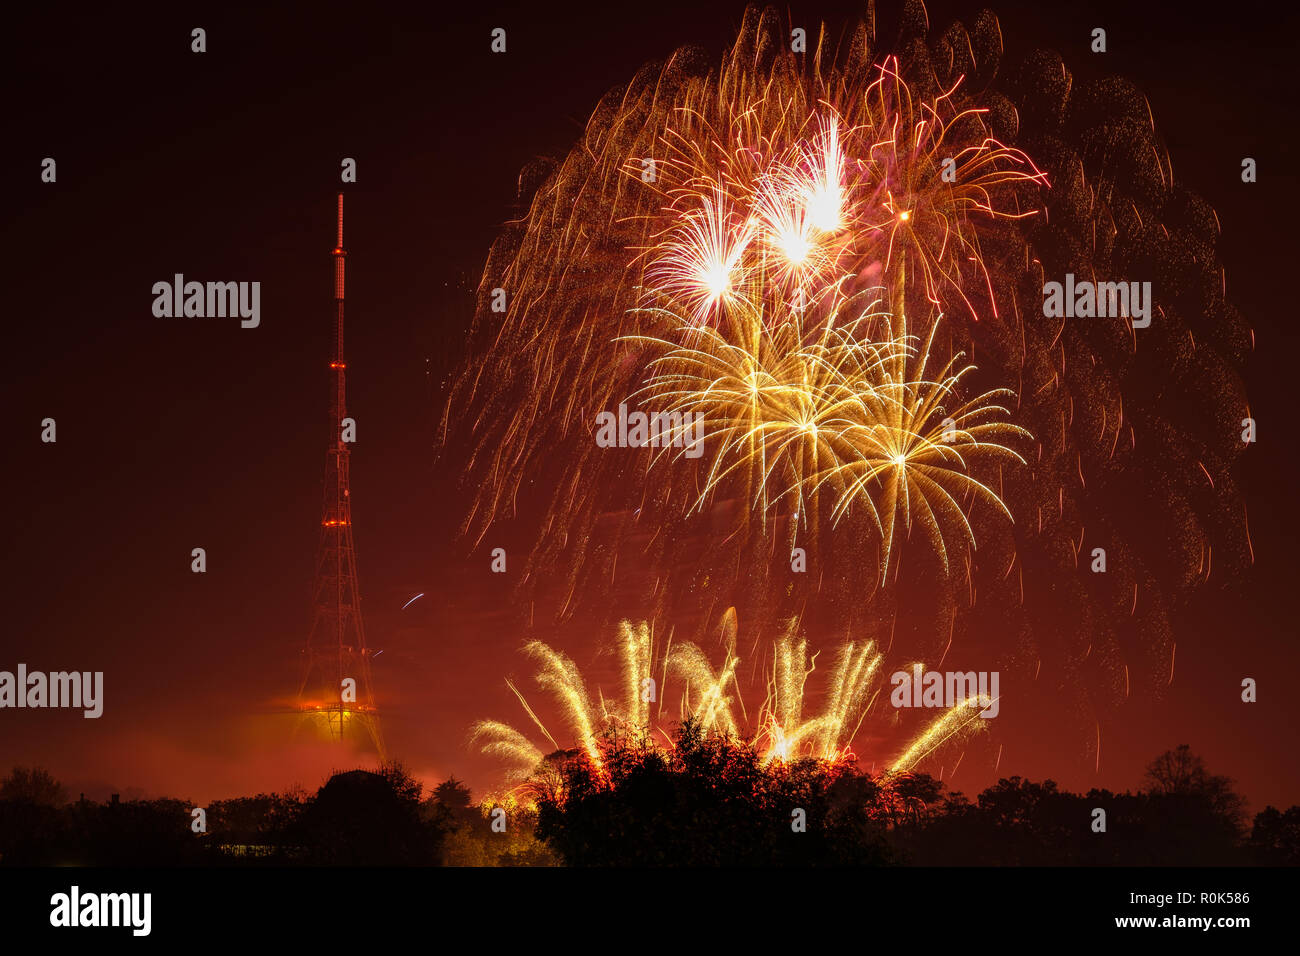 5th November Fireworks London Stock Photos and Images